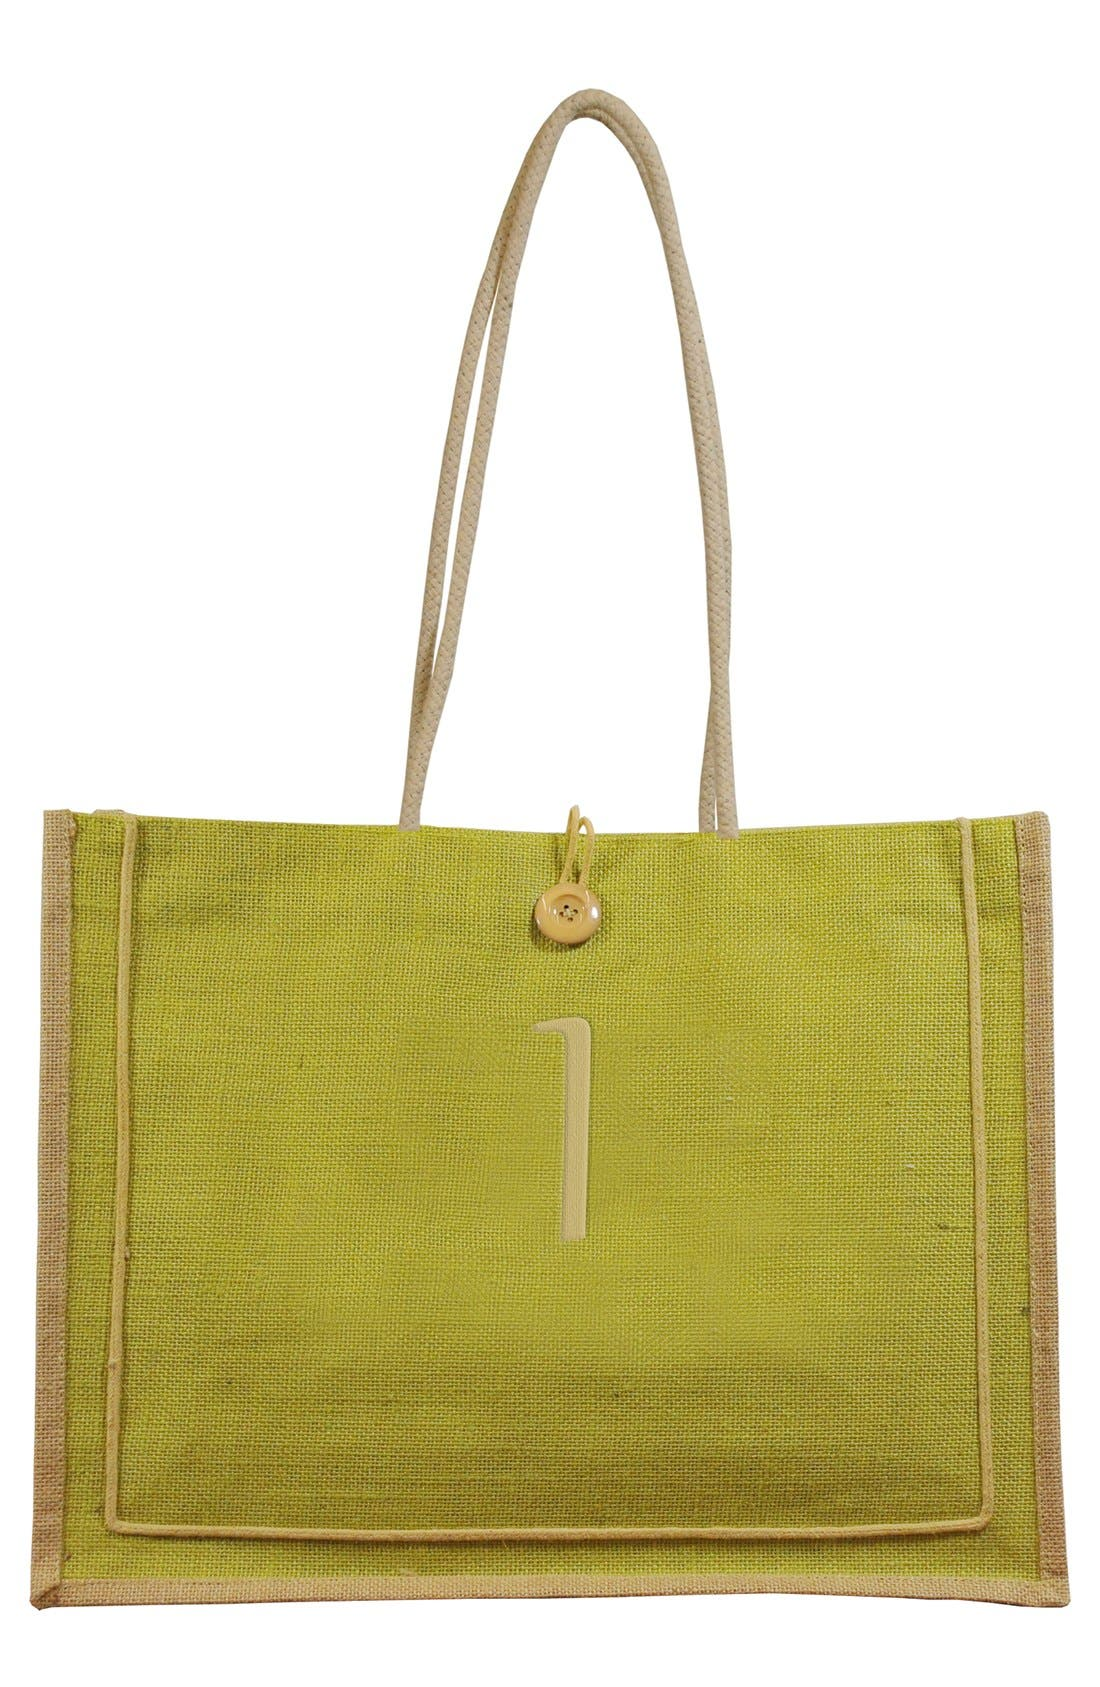 Alternate Image 1 Selected - Cathy's Concepts 'Newport' Monogrammed Jute Tote